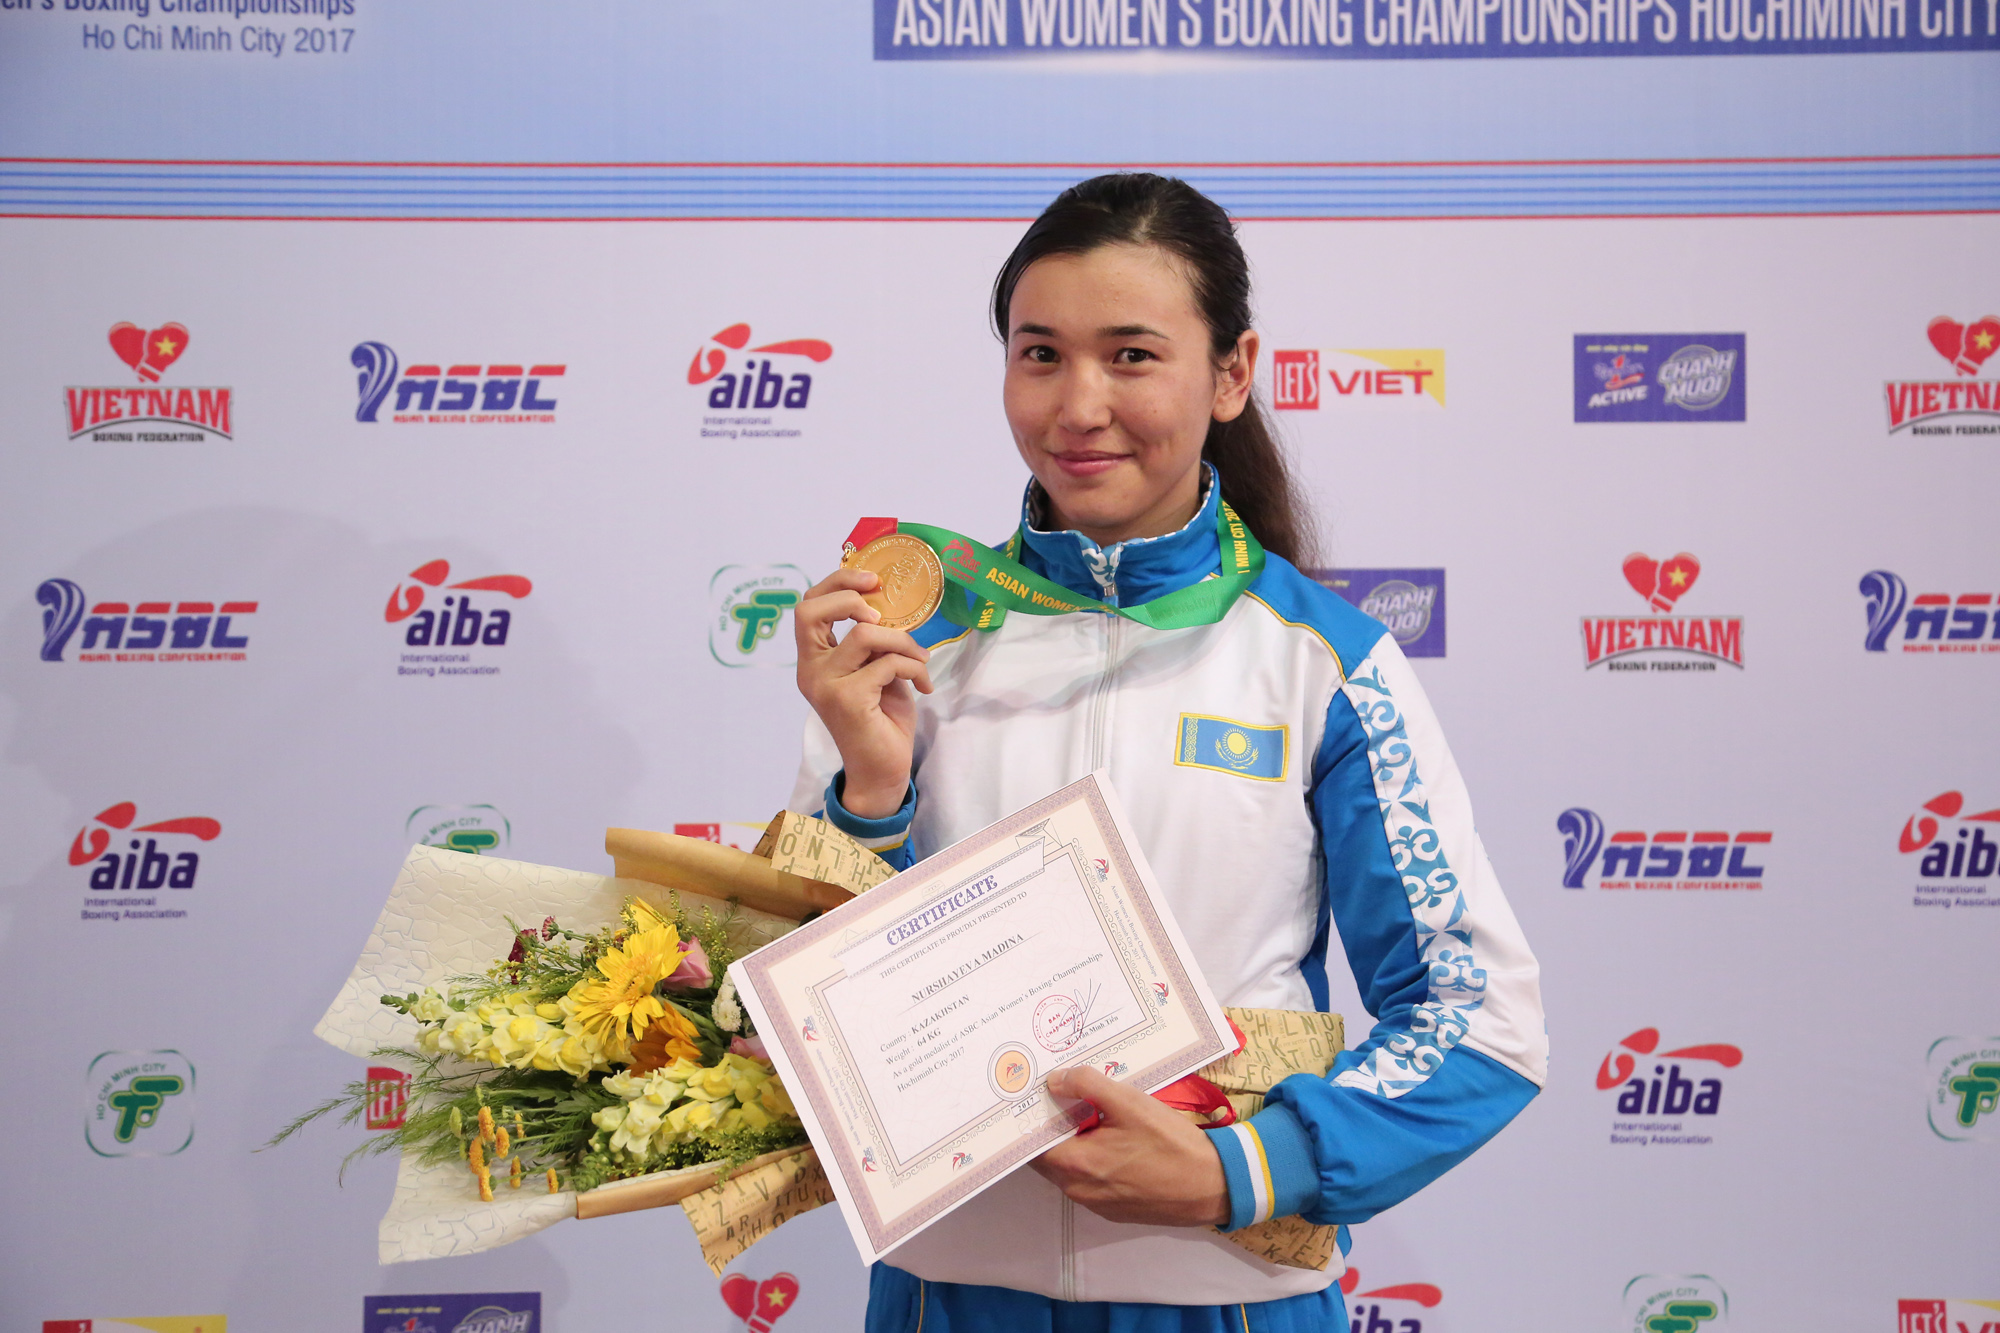 The women's national team of Kazakhstan has won six medals at the Asian Championships